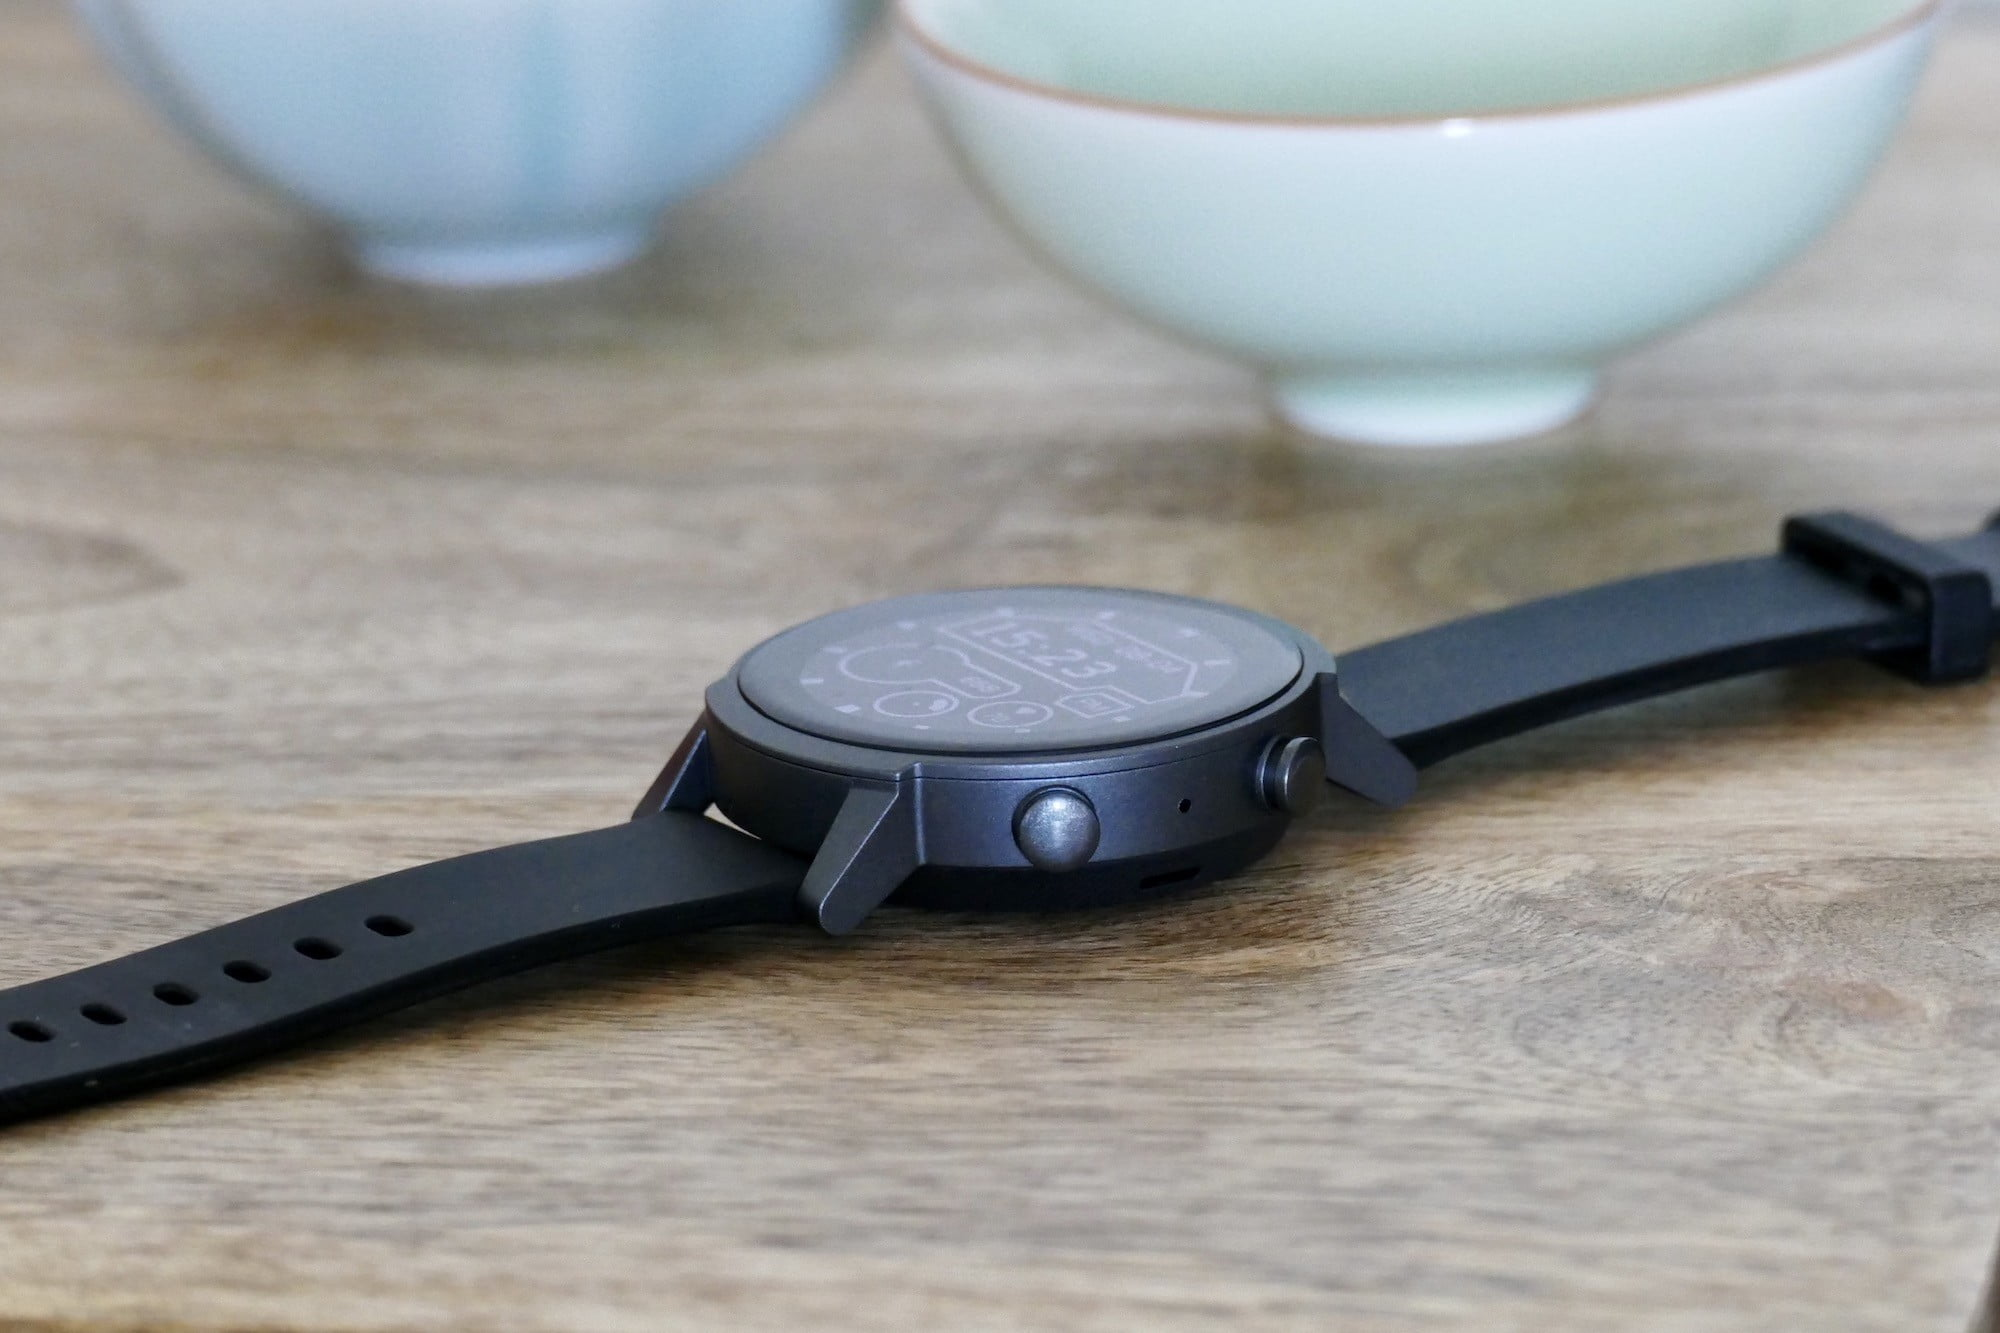 Mobvoi TicWatch E3's buttons seen from the side.